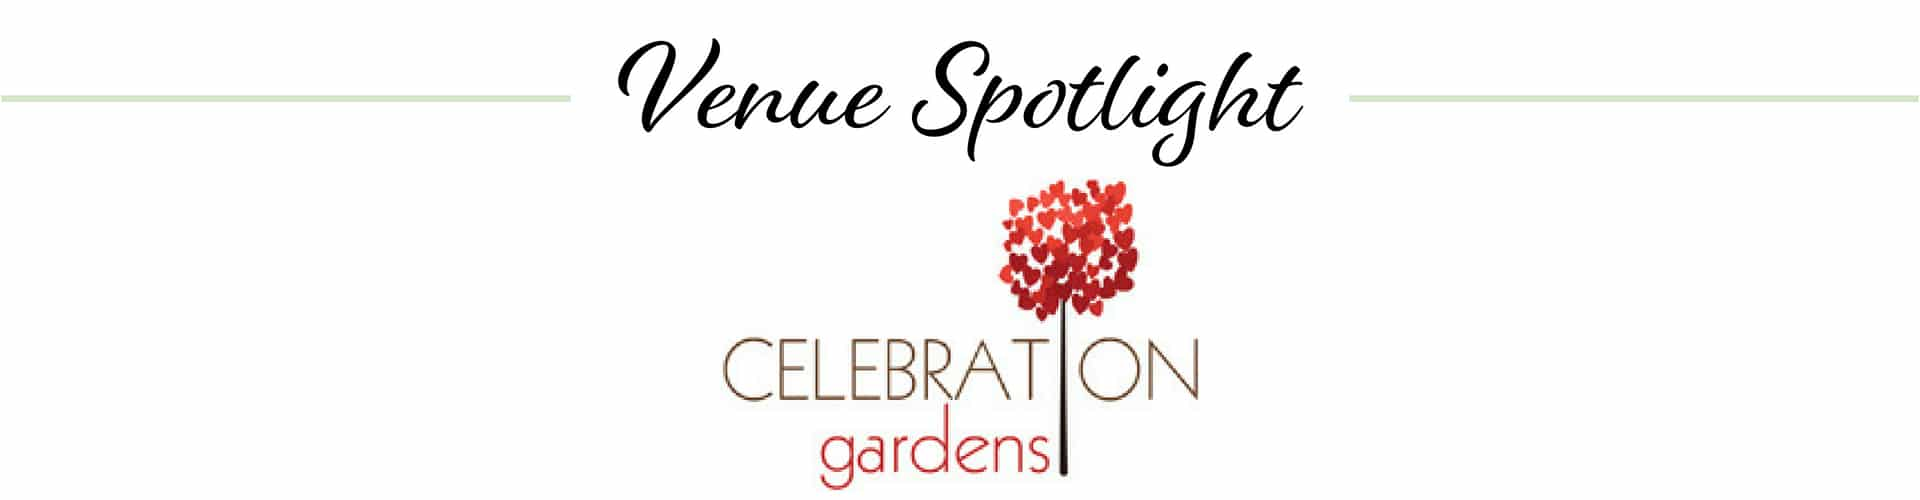 Venue Spotlight Celebration Gardens